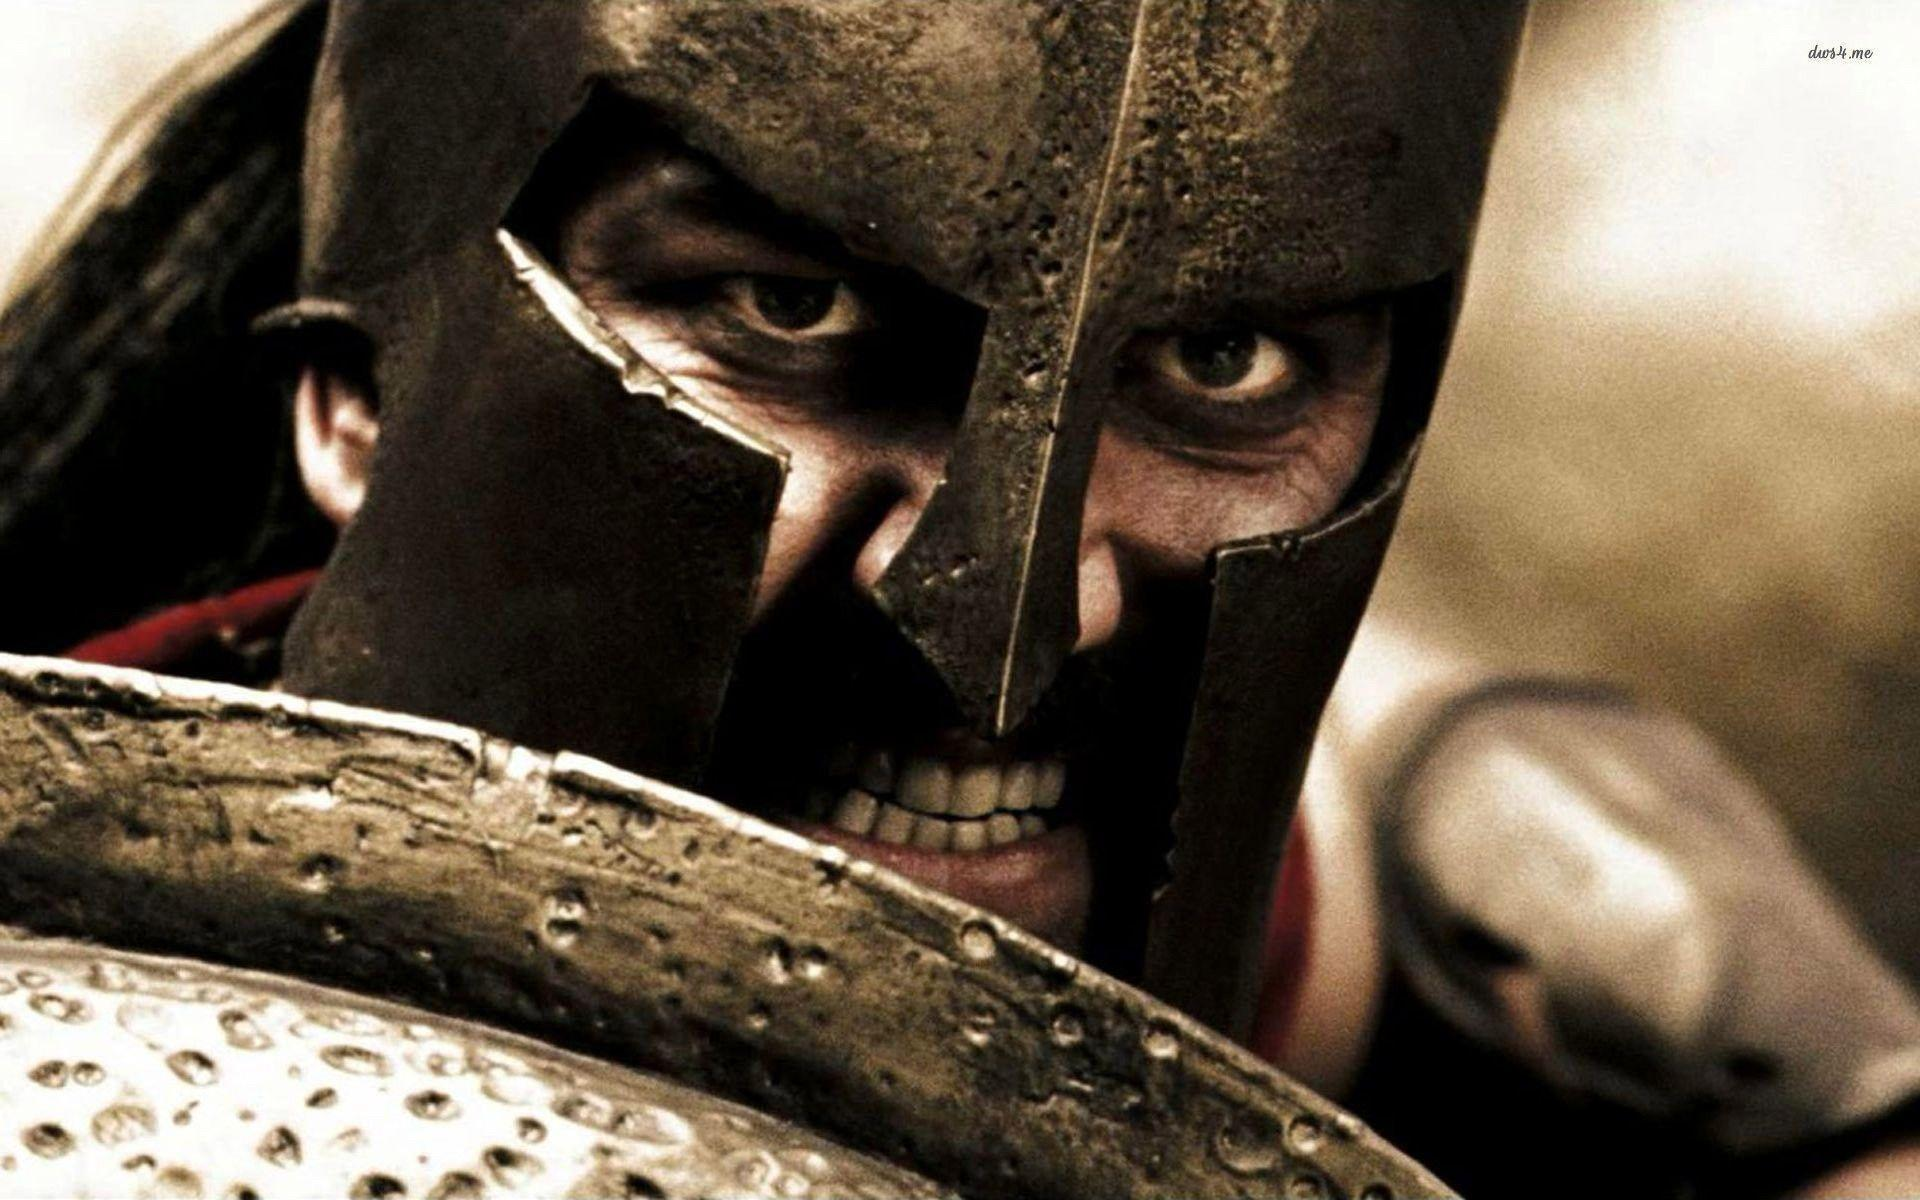 300 Full Movie >> Spartans 300 Wallpapers Wallpaper Cave